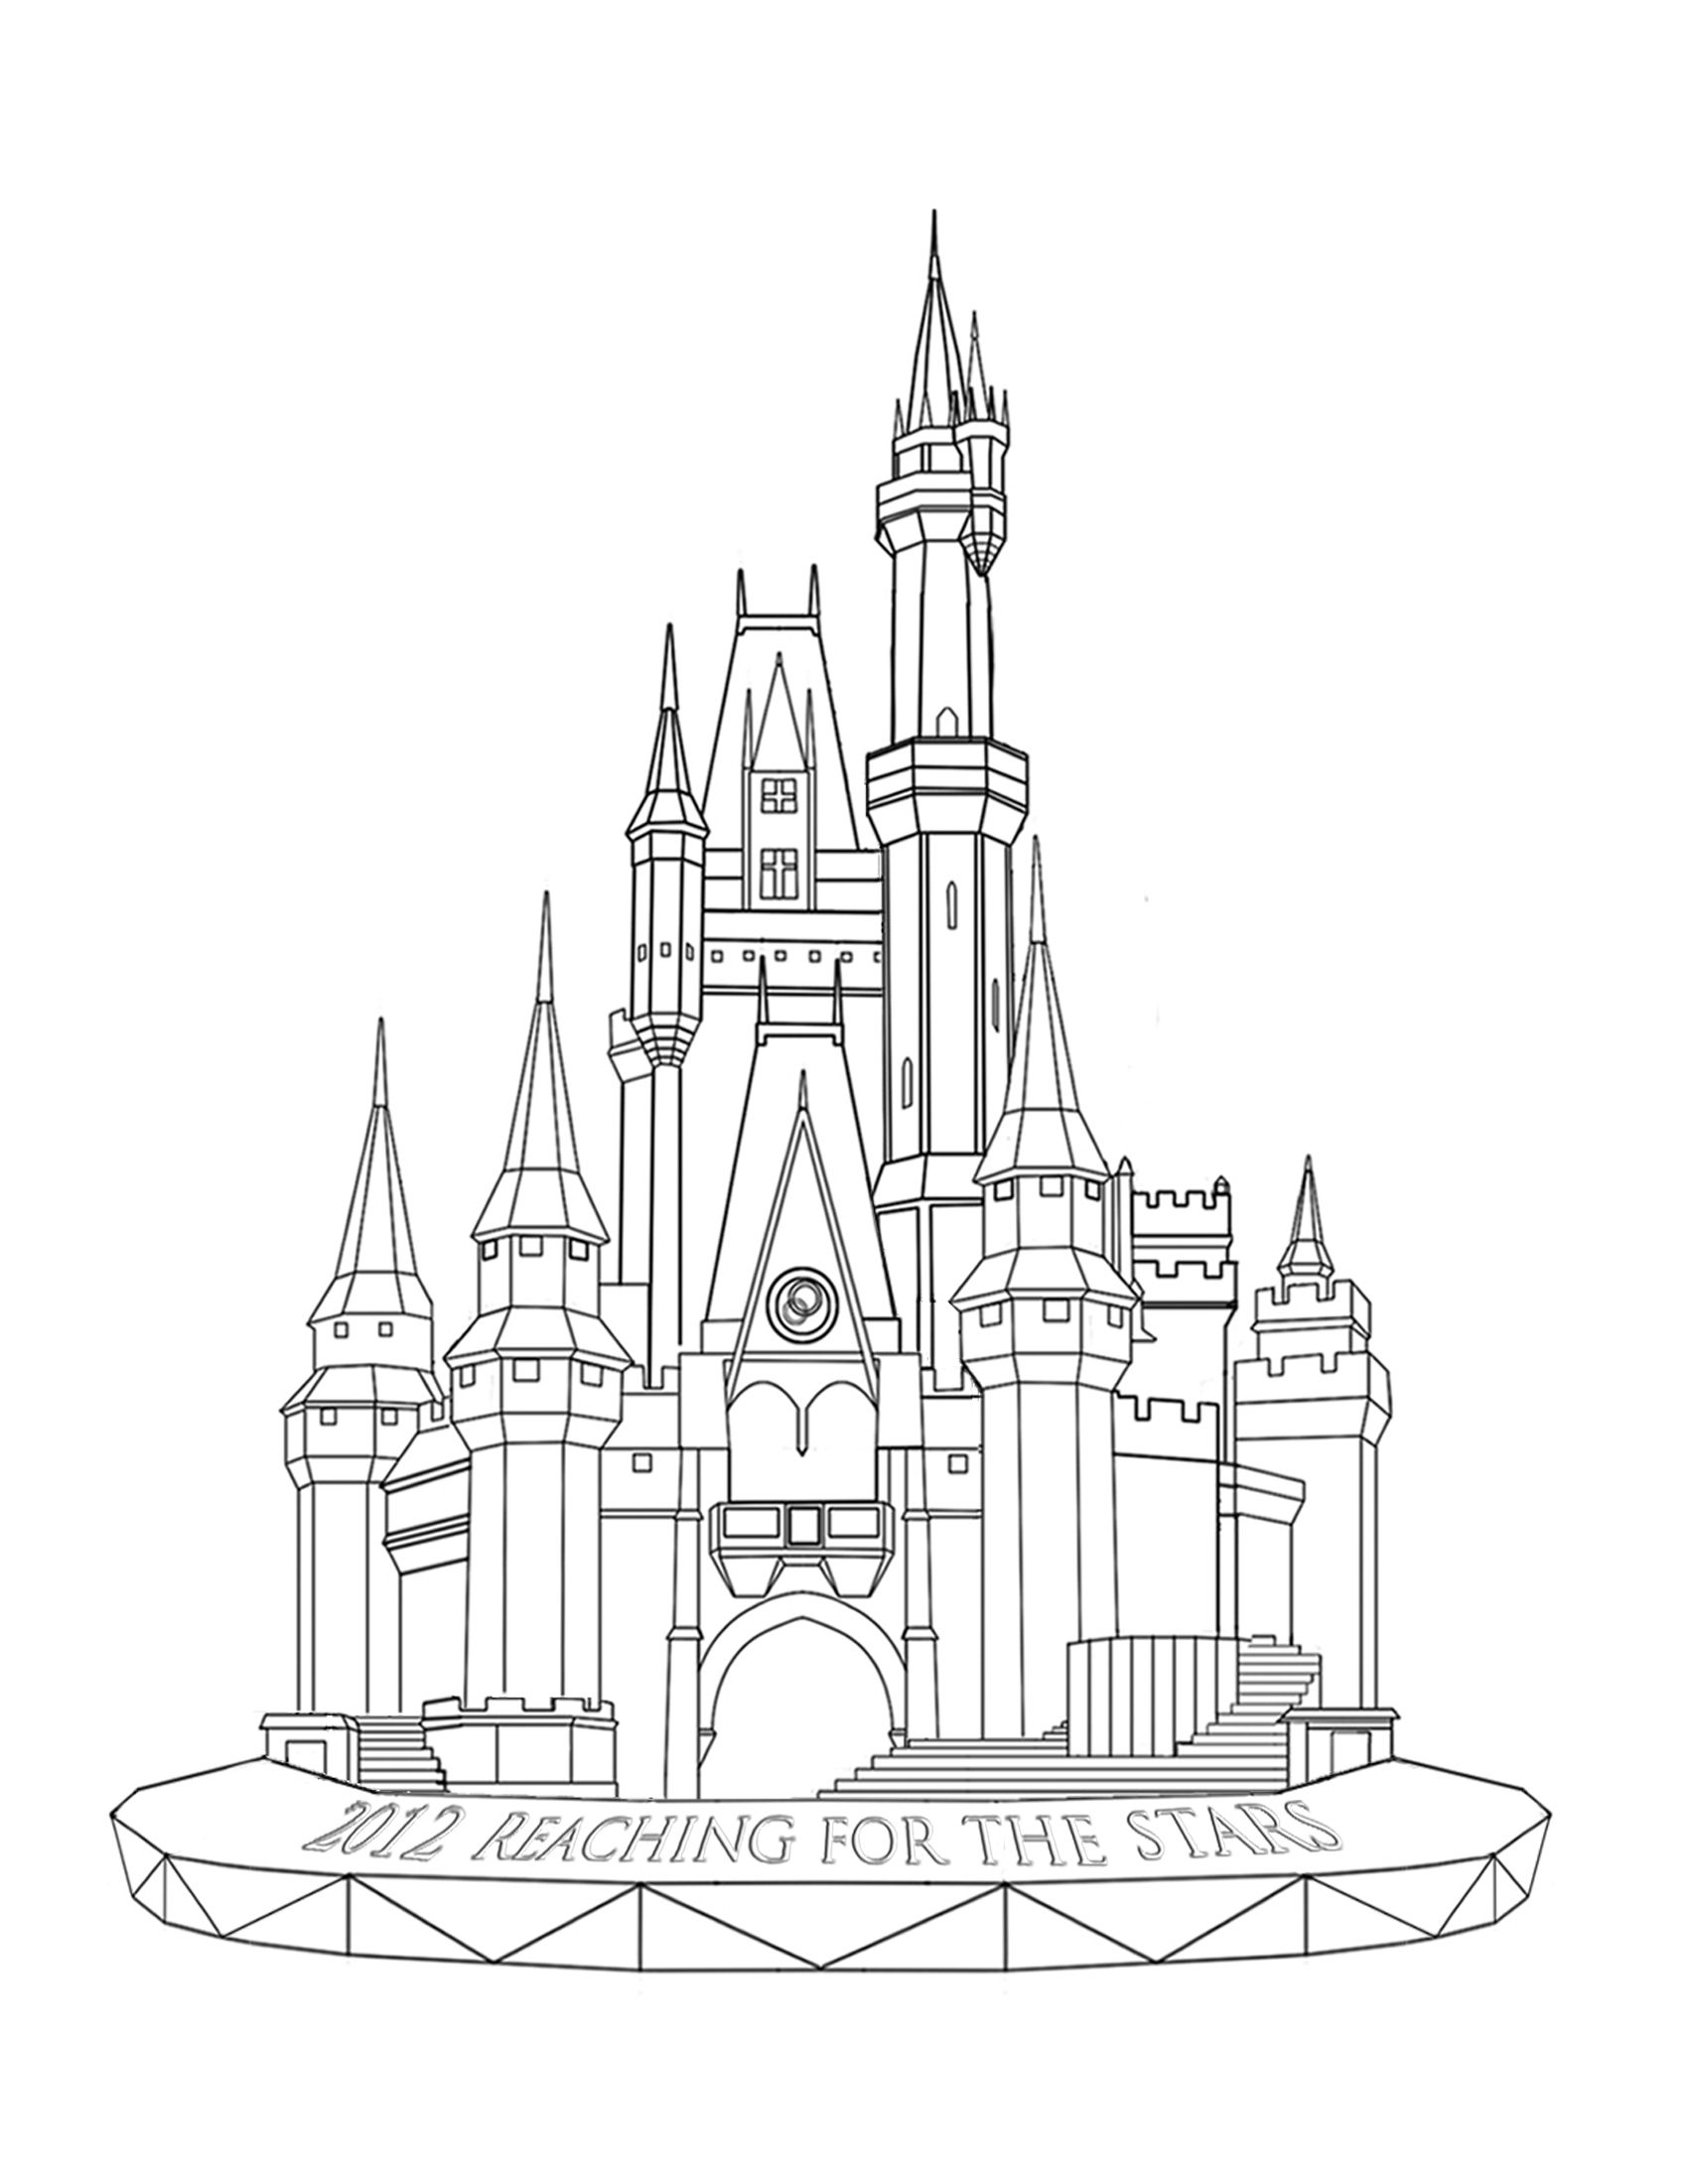 Production nana sketches drawing and coloring for kids for Cinderella castle coloring pages